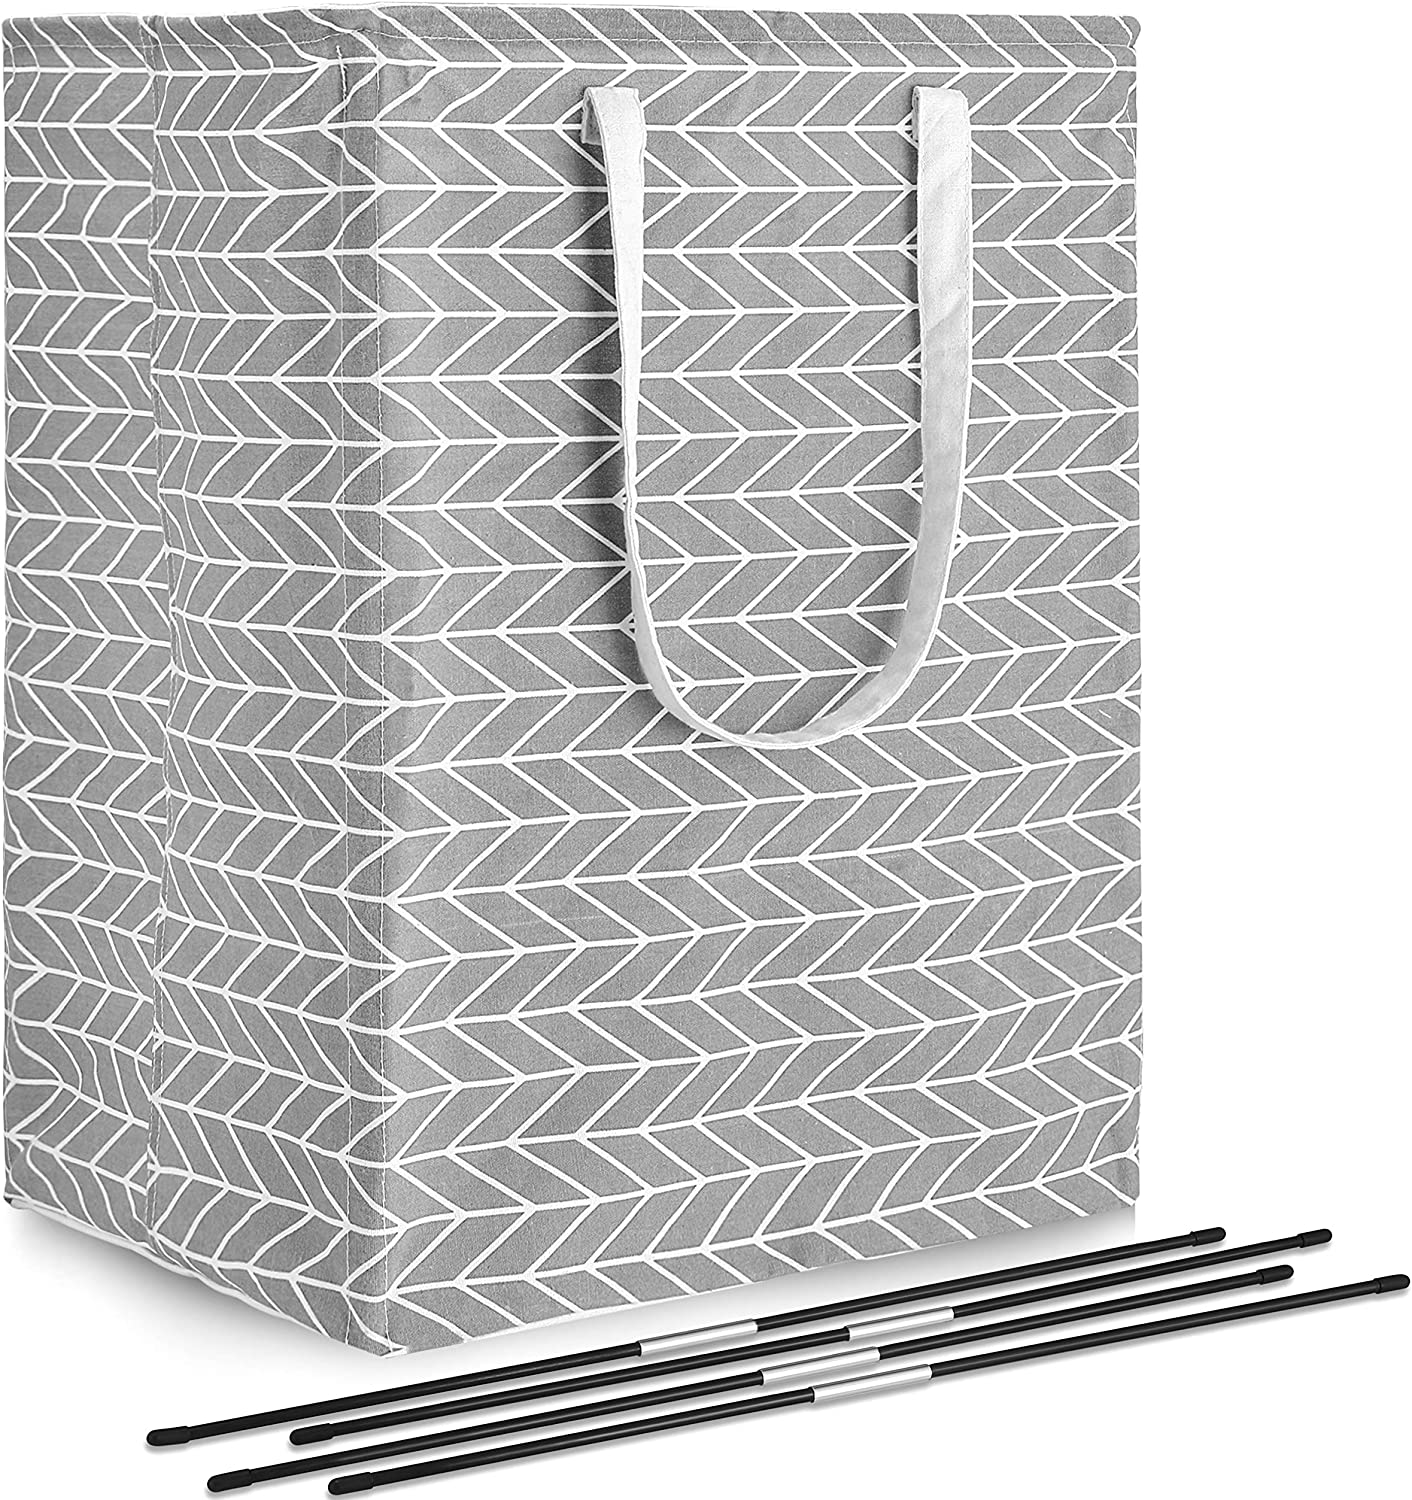 Clothes 96L Collapsible Laundry Basket with Handle 4 Detachable Rods and 1 Removable Liner Waterproof Cotton Linen Foldable Bathroom Storage Basket for Toys Extra Large Laundry Hamper